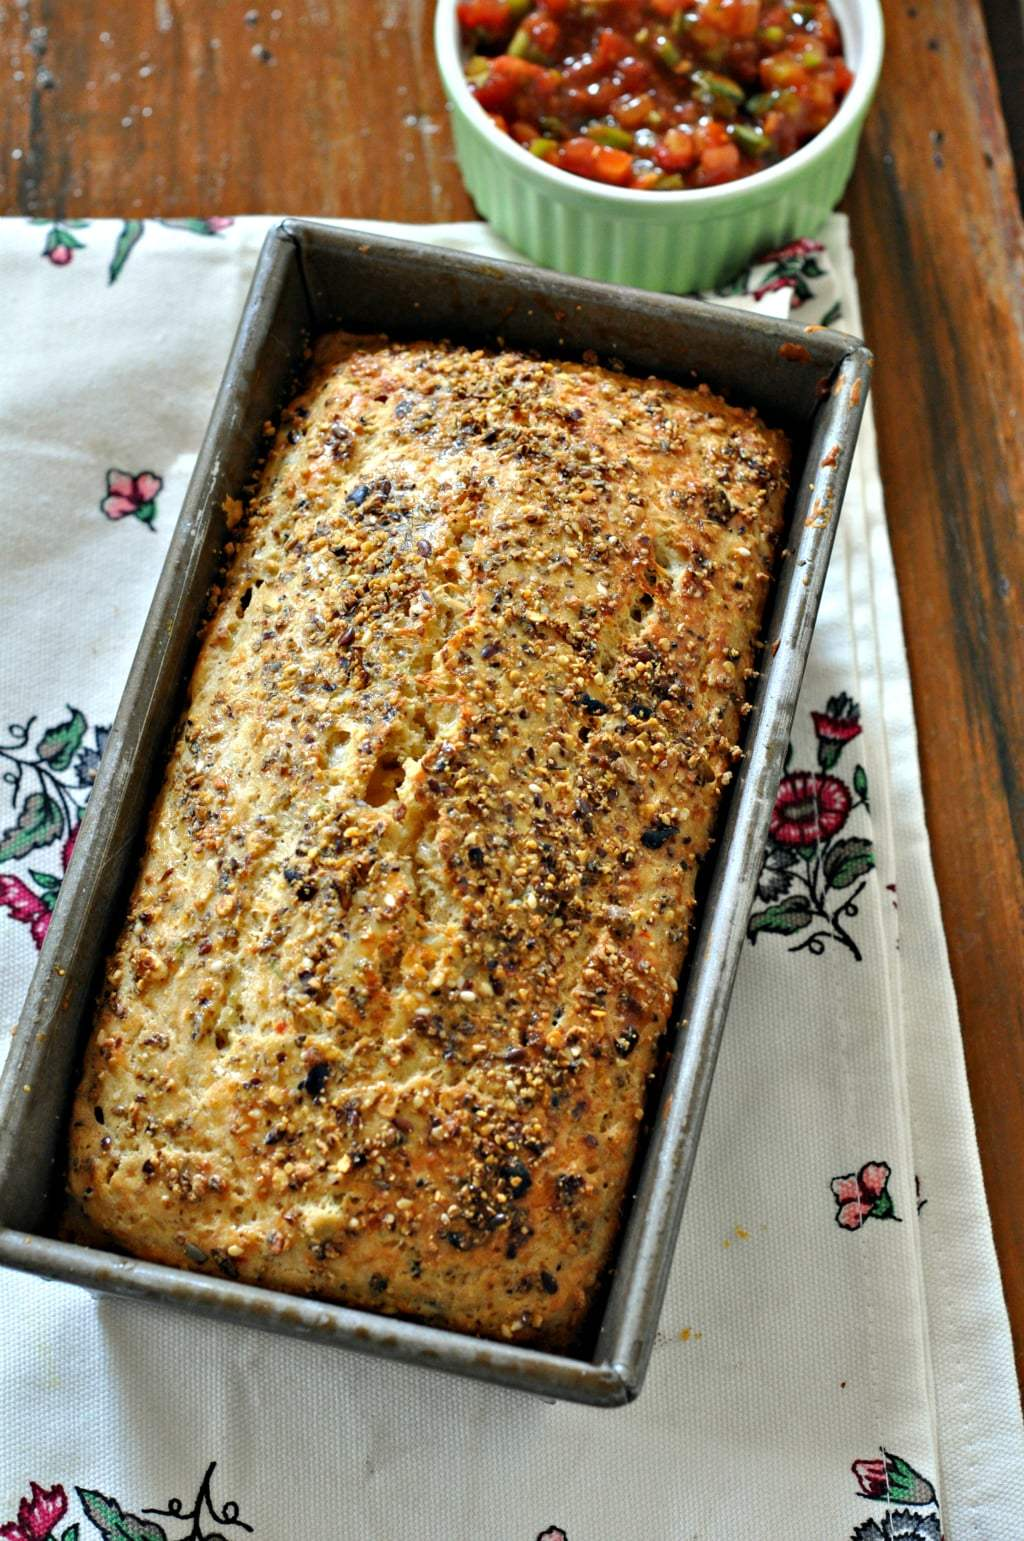 Olive and Sundried Tomato Quickbread